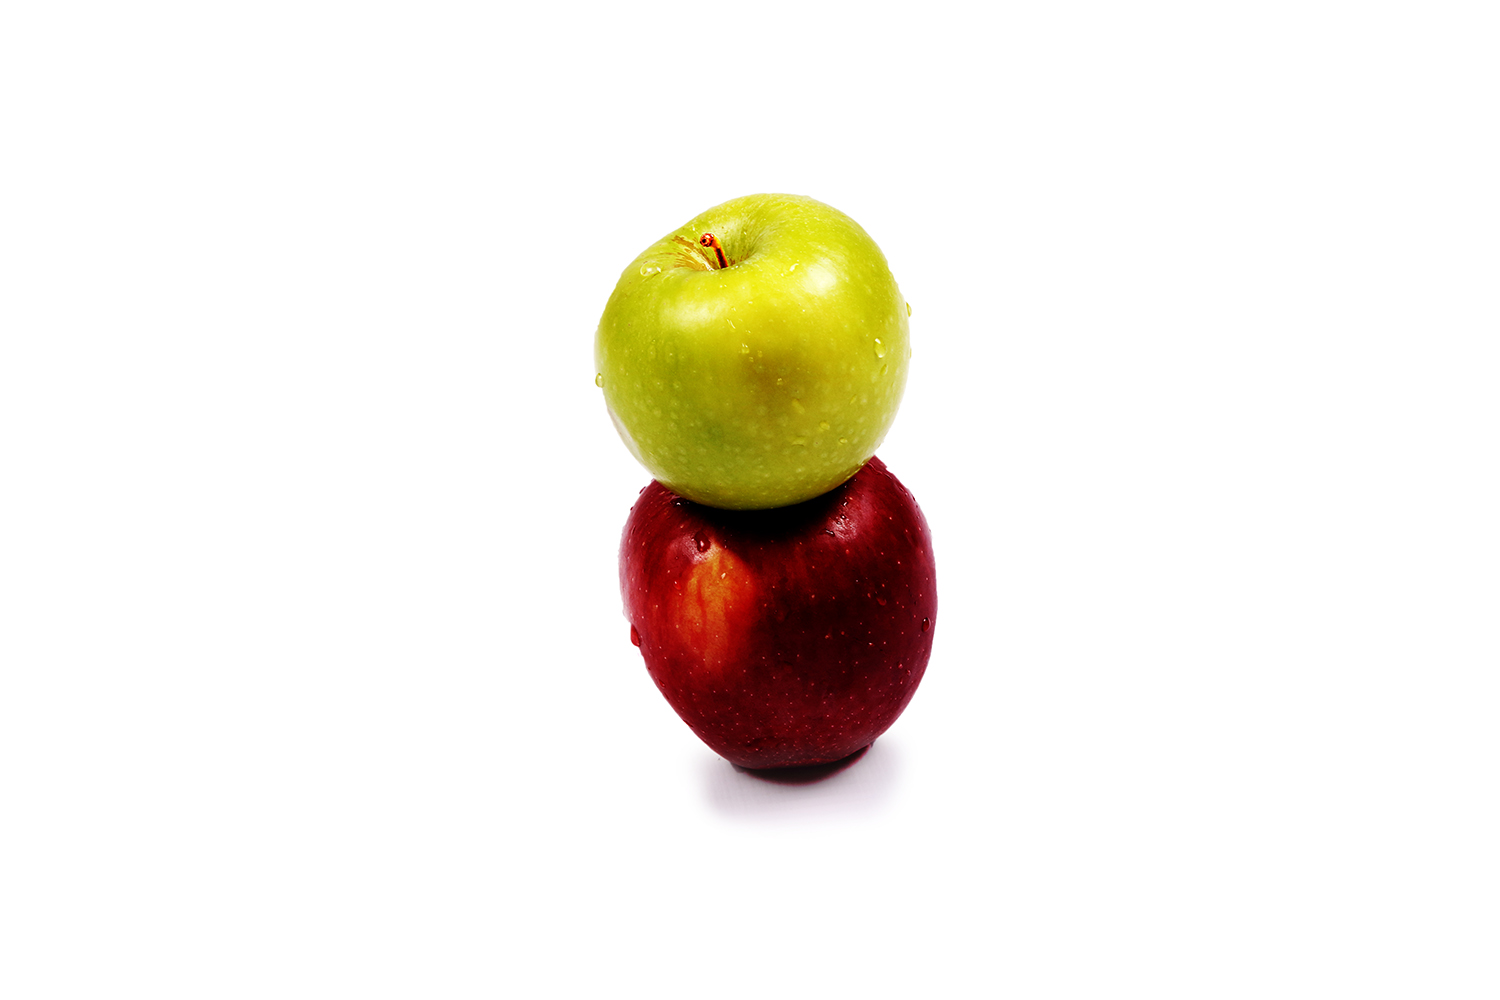 Red and green apple on isolated white background